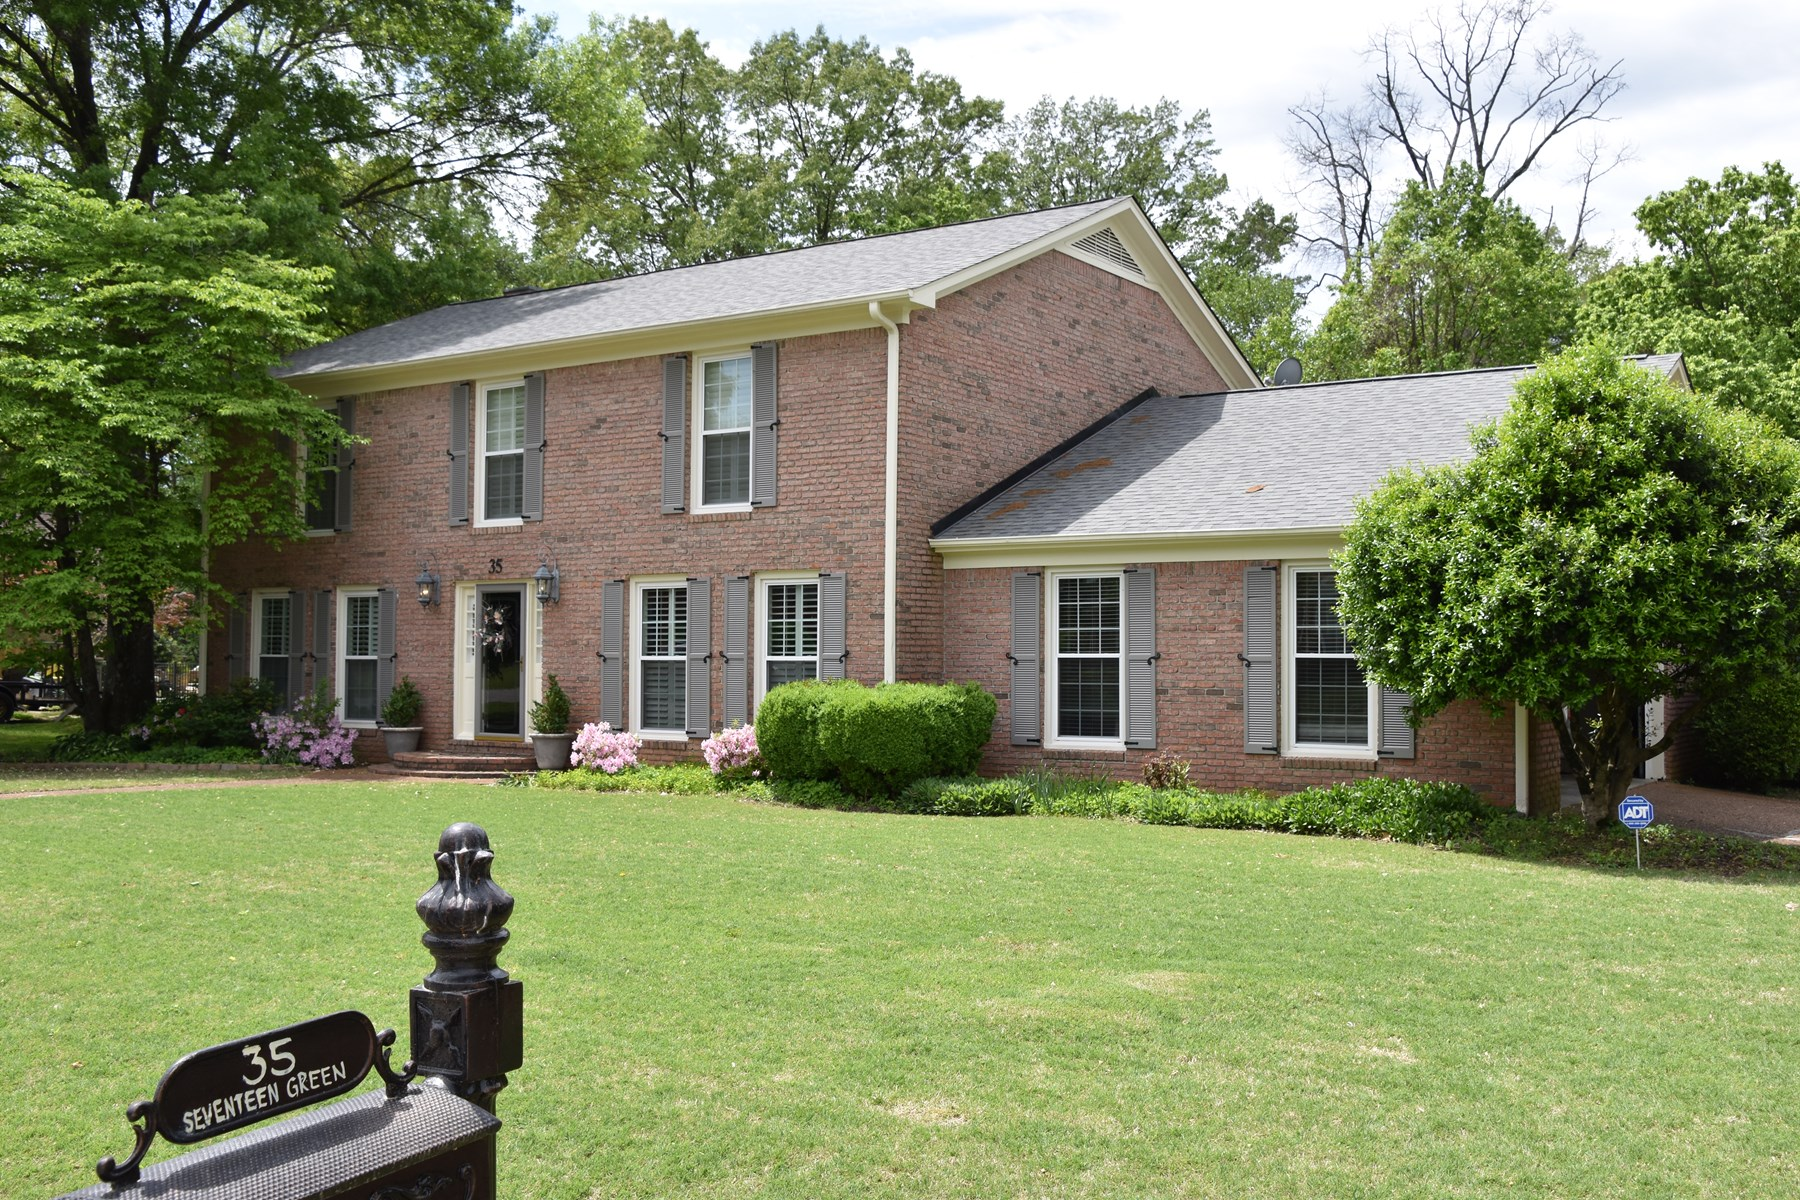 Home for sale near Country Club Golf Course in Jackson TN.